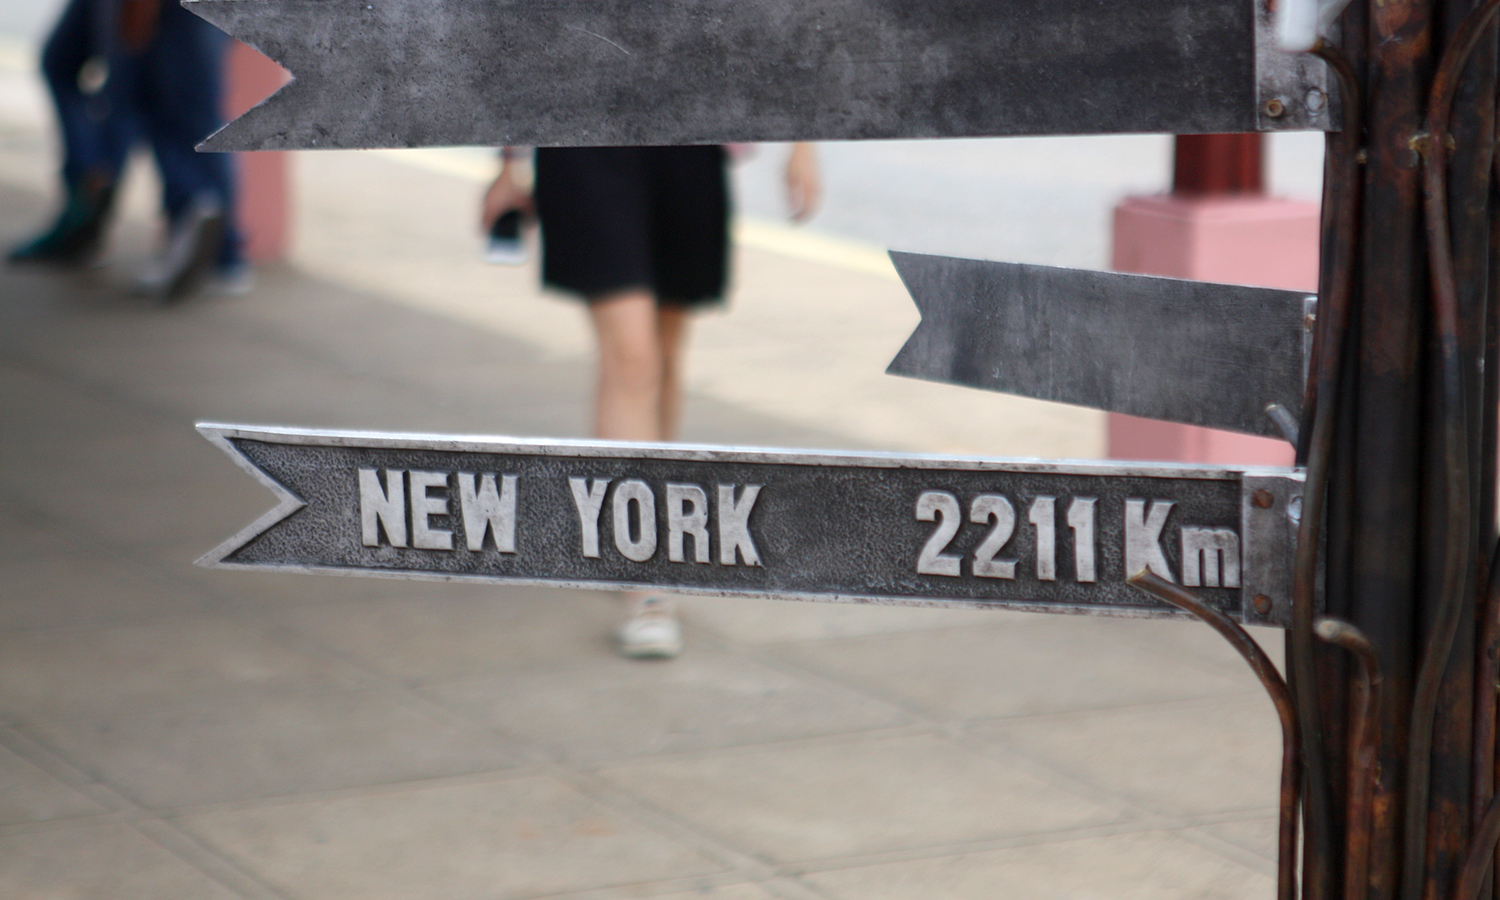 New York, NY, only 2211 kilometers from Havana, Cuba!